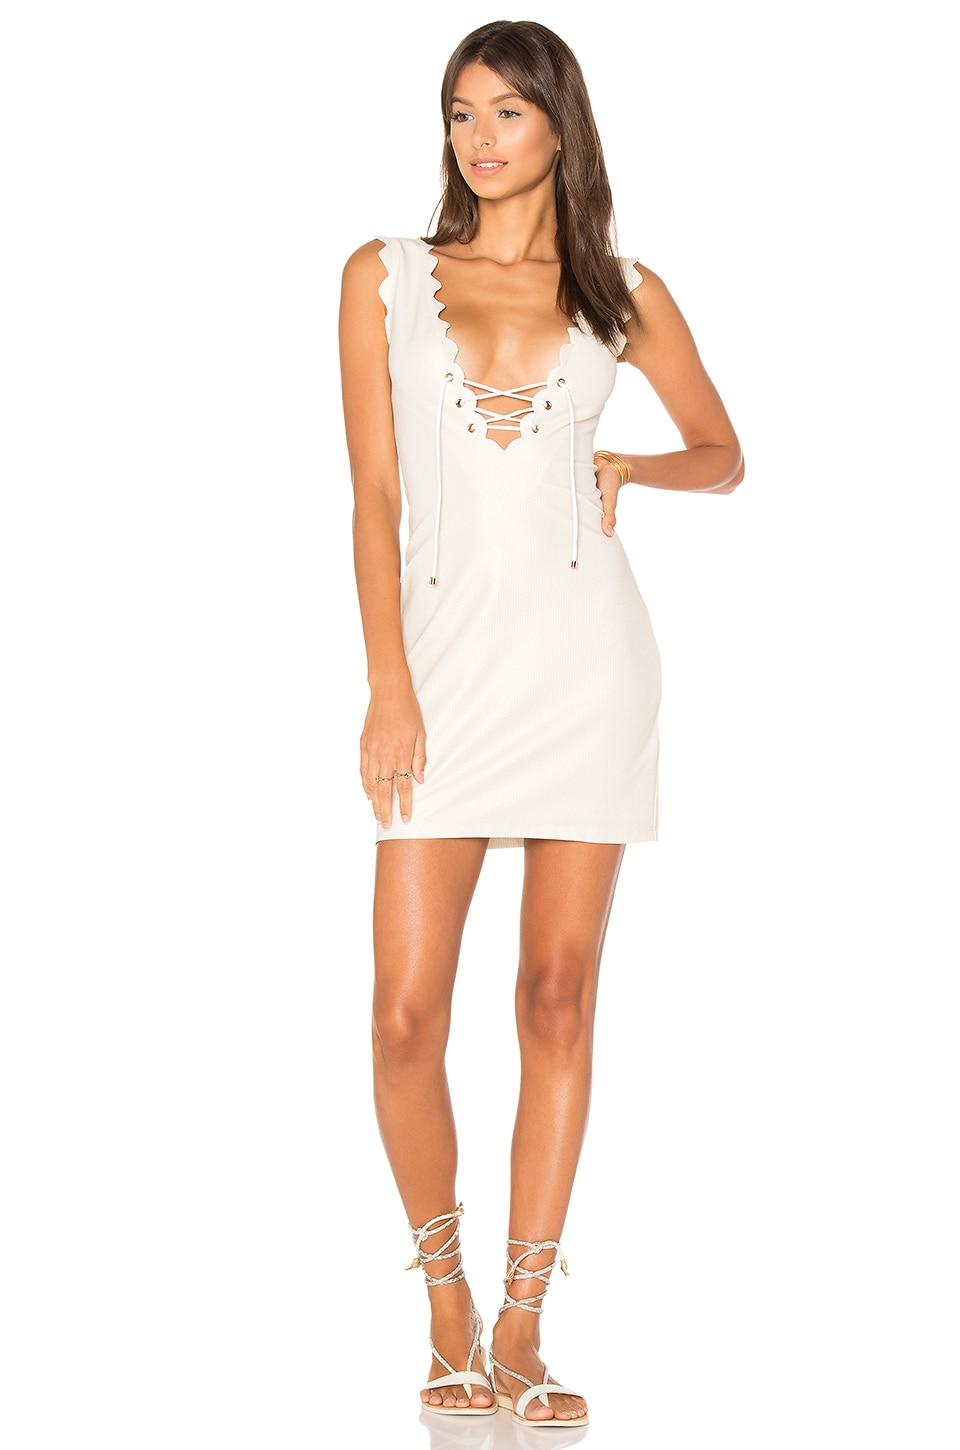 Marysia Swim Amagansett Tie Dress in Metallic Cream